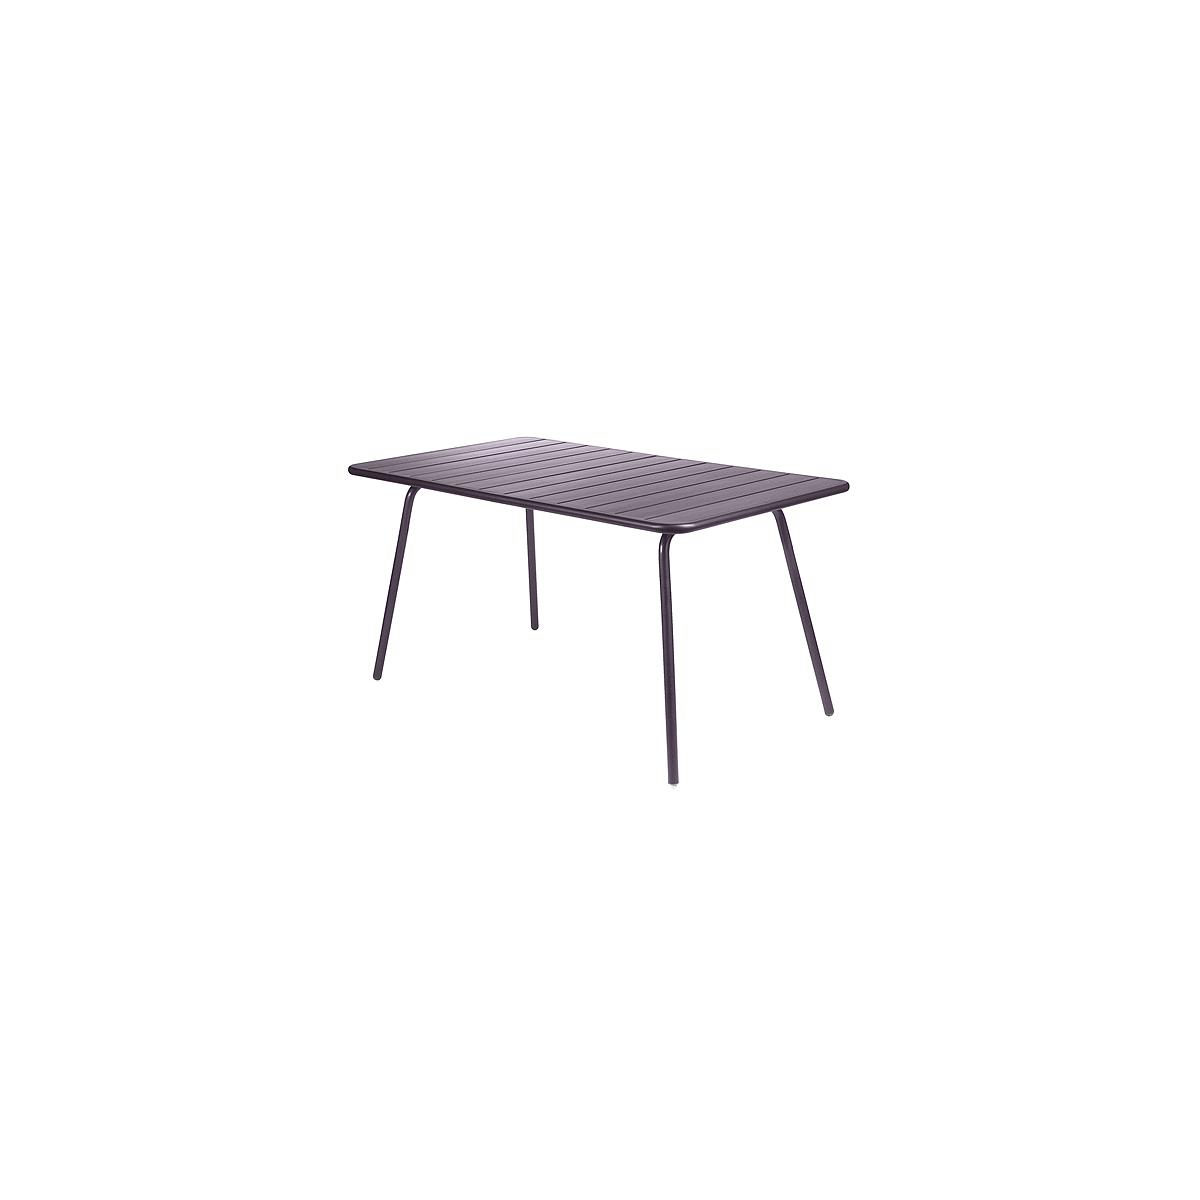 LUXEMBOURG by Fermob Table 143x80 cm prune